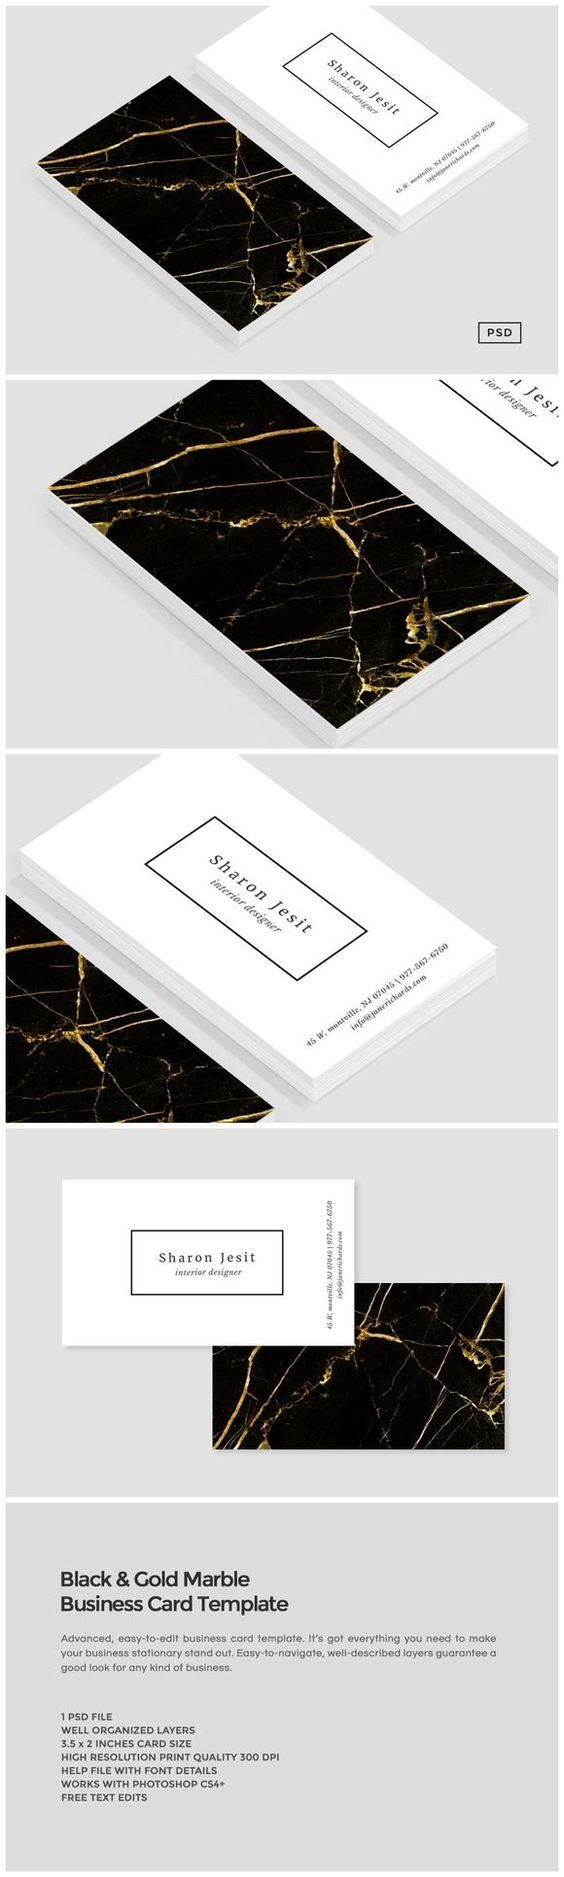 7 Best Ea I Images On Pinterest Business Card Design Business